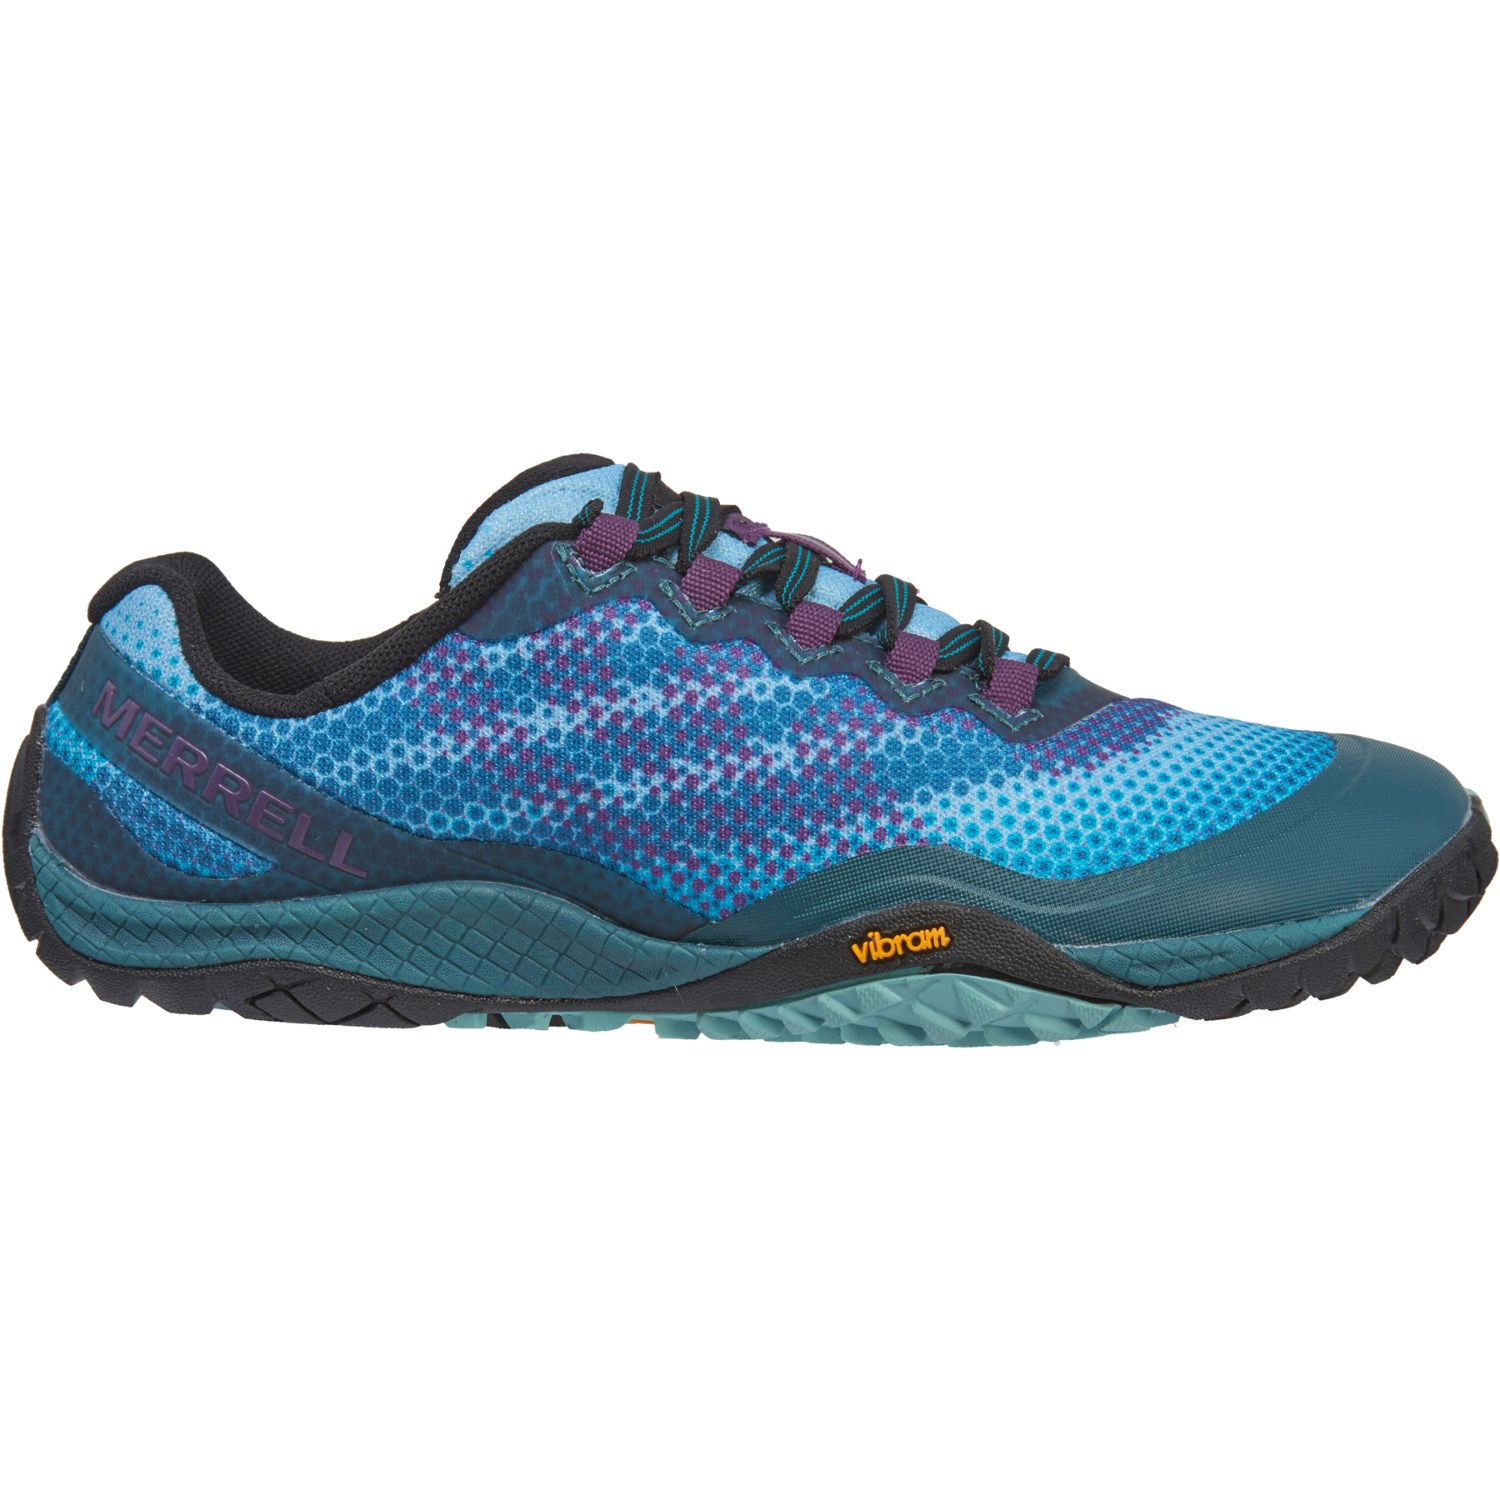 868d7762d Merrell Trail Gloves 4 Shield Running Shoes (For Women) - Save 33%